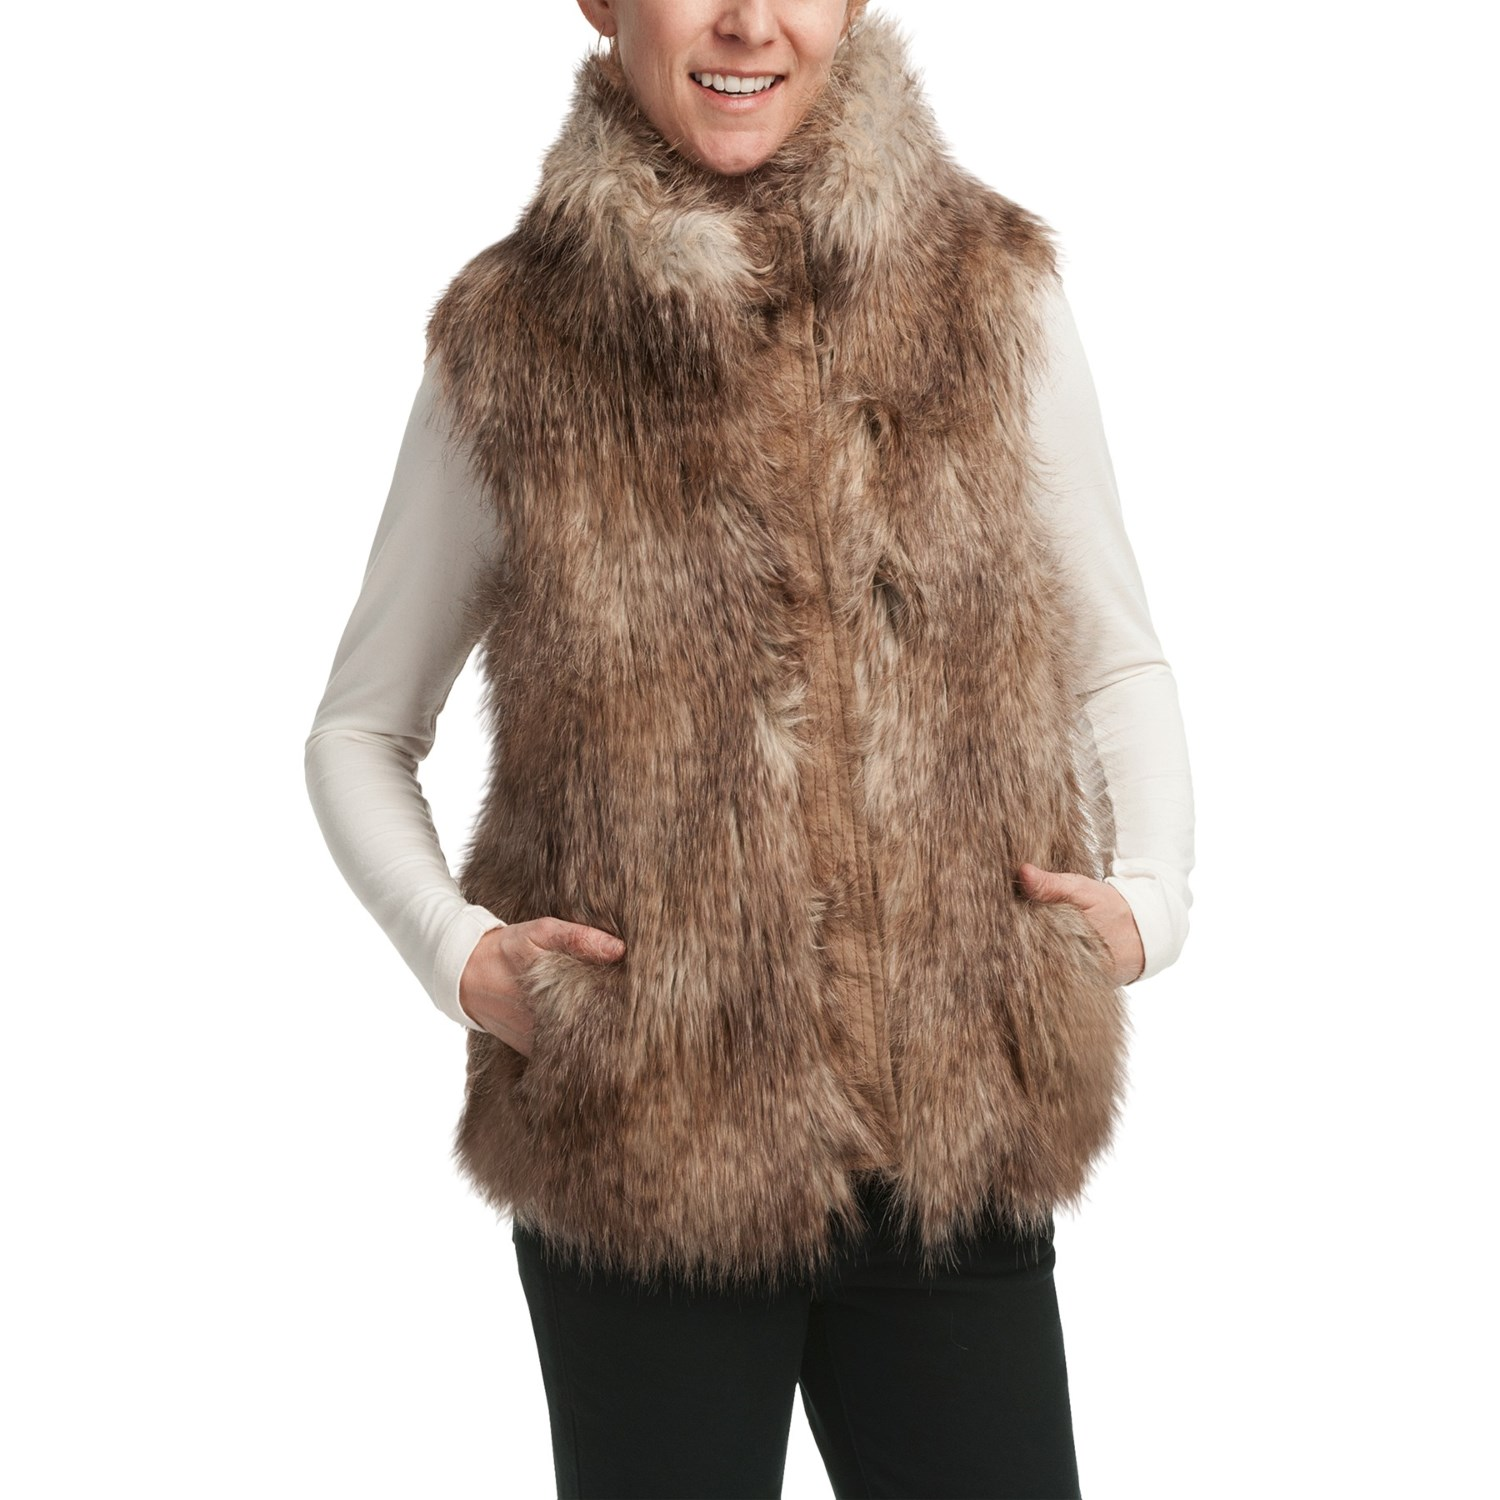 Shop for womens faux fur vest online at Target. Free shipping on purchases over $35 and save 5% every day with your Target REDcard.